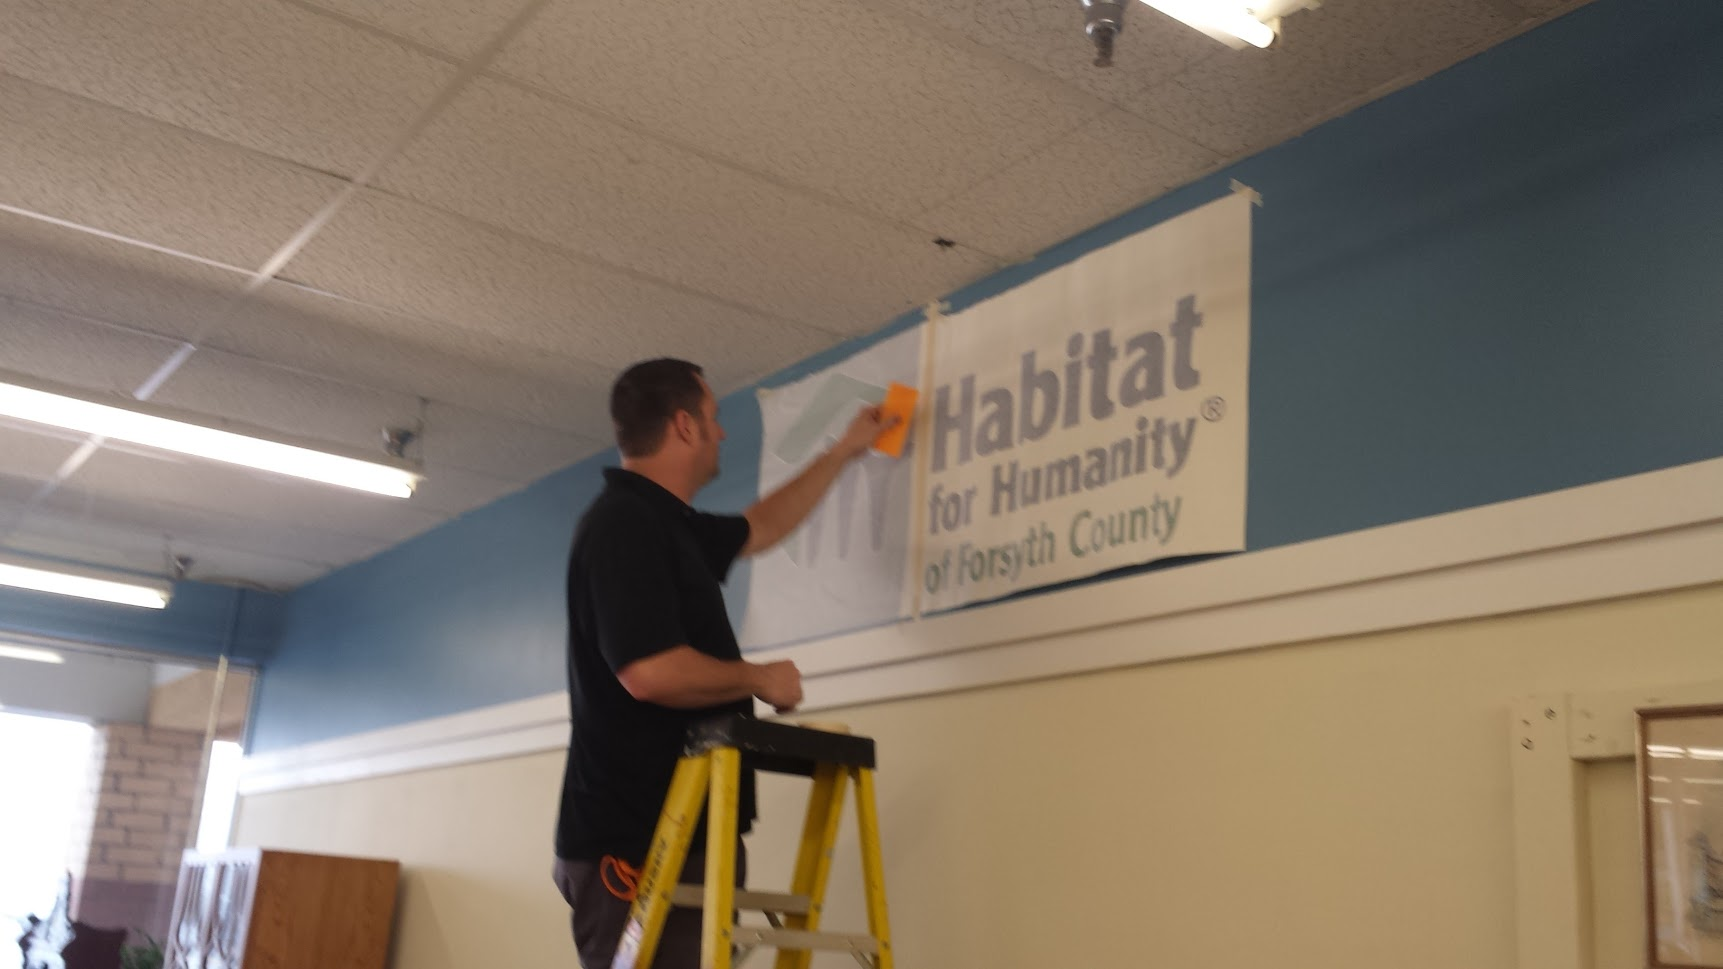 habitat humanity forsyth county wall graphics vinyl